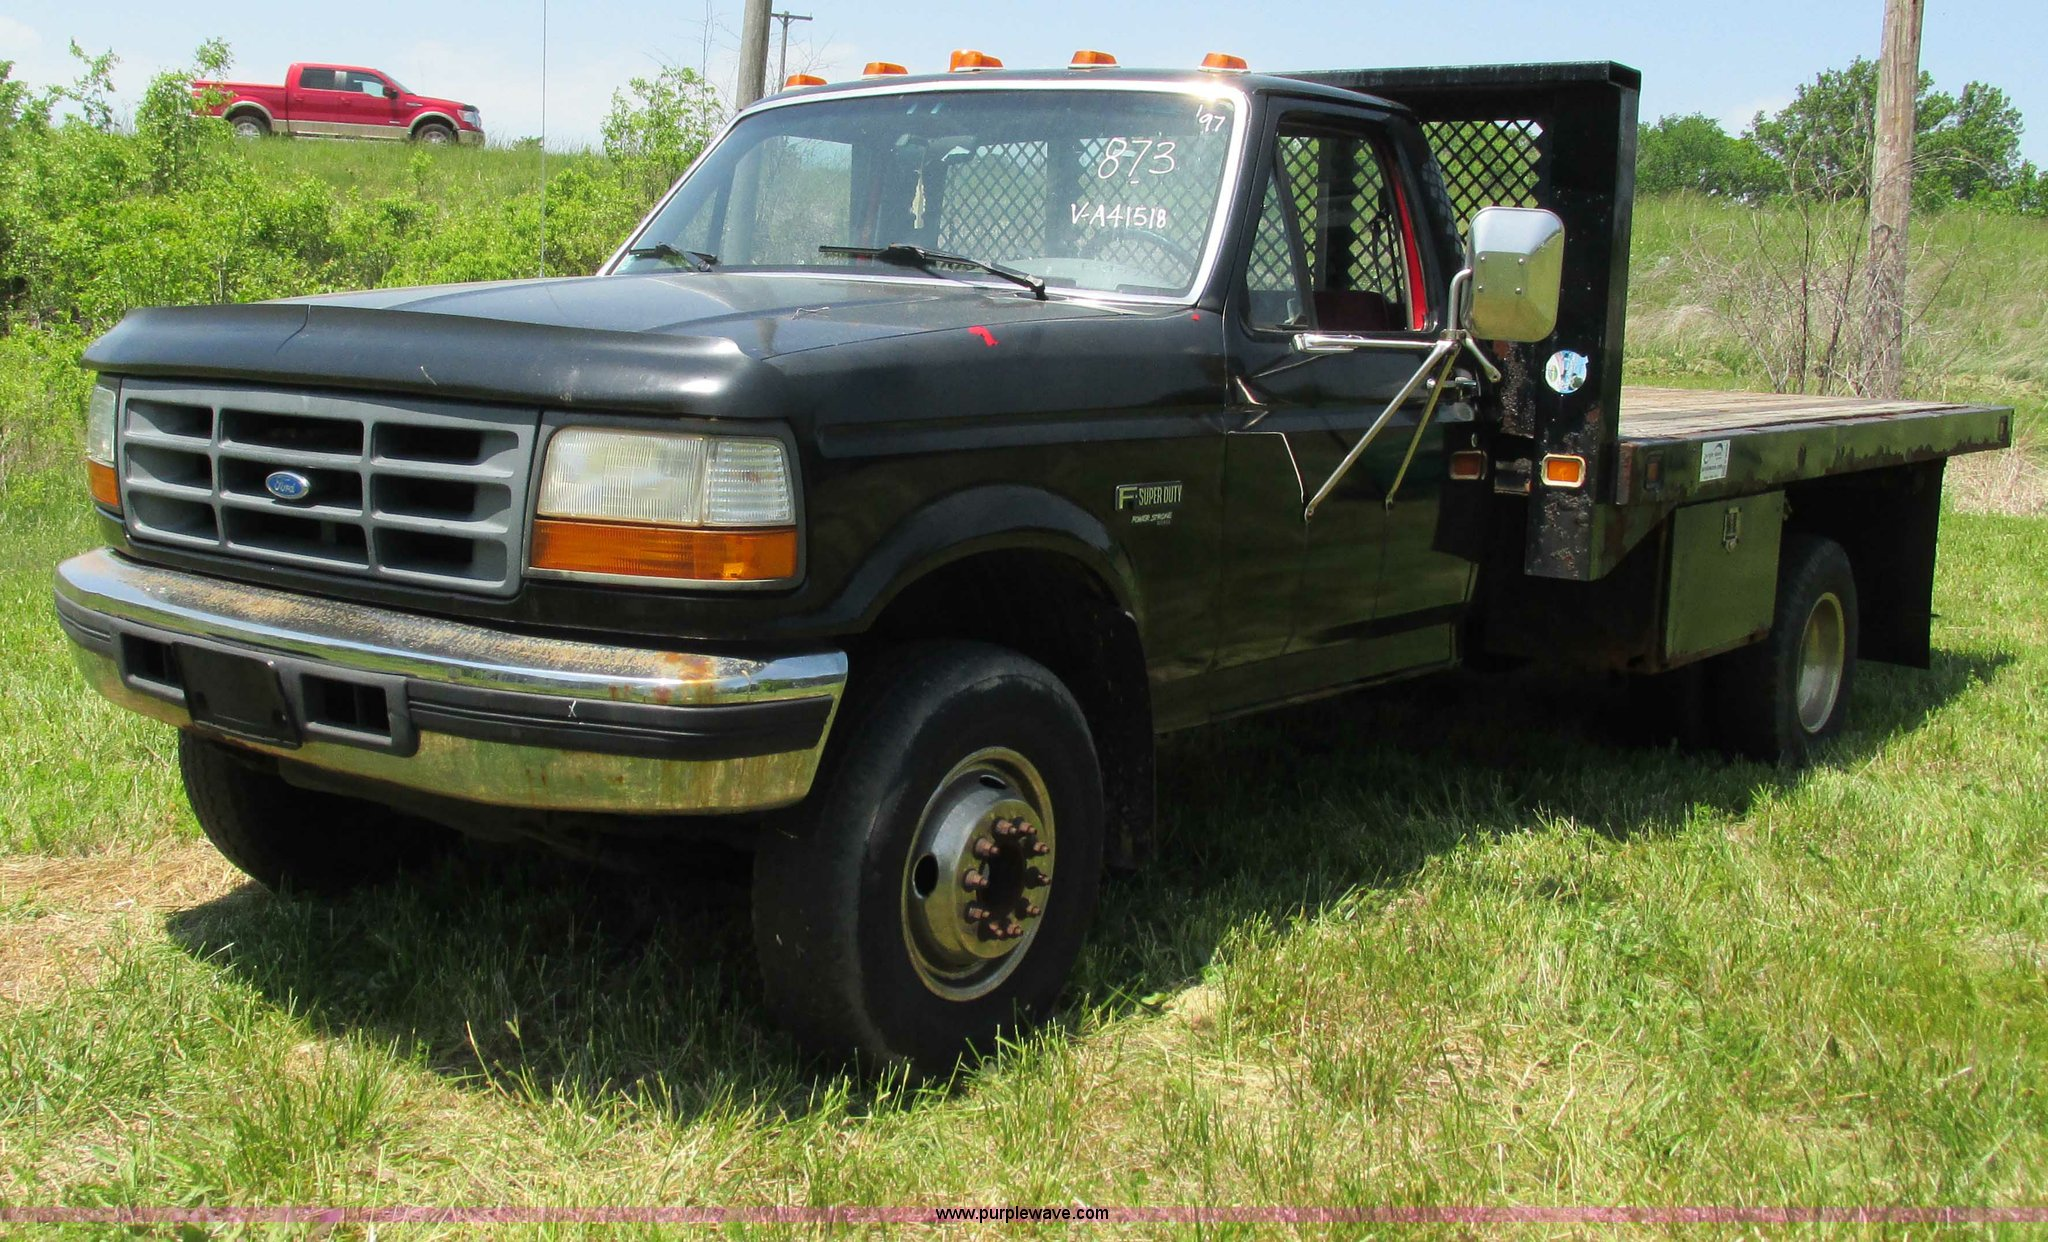 1997 Ford F450 Super Duty flatbed truck | Item G9298 | SOLD!...